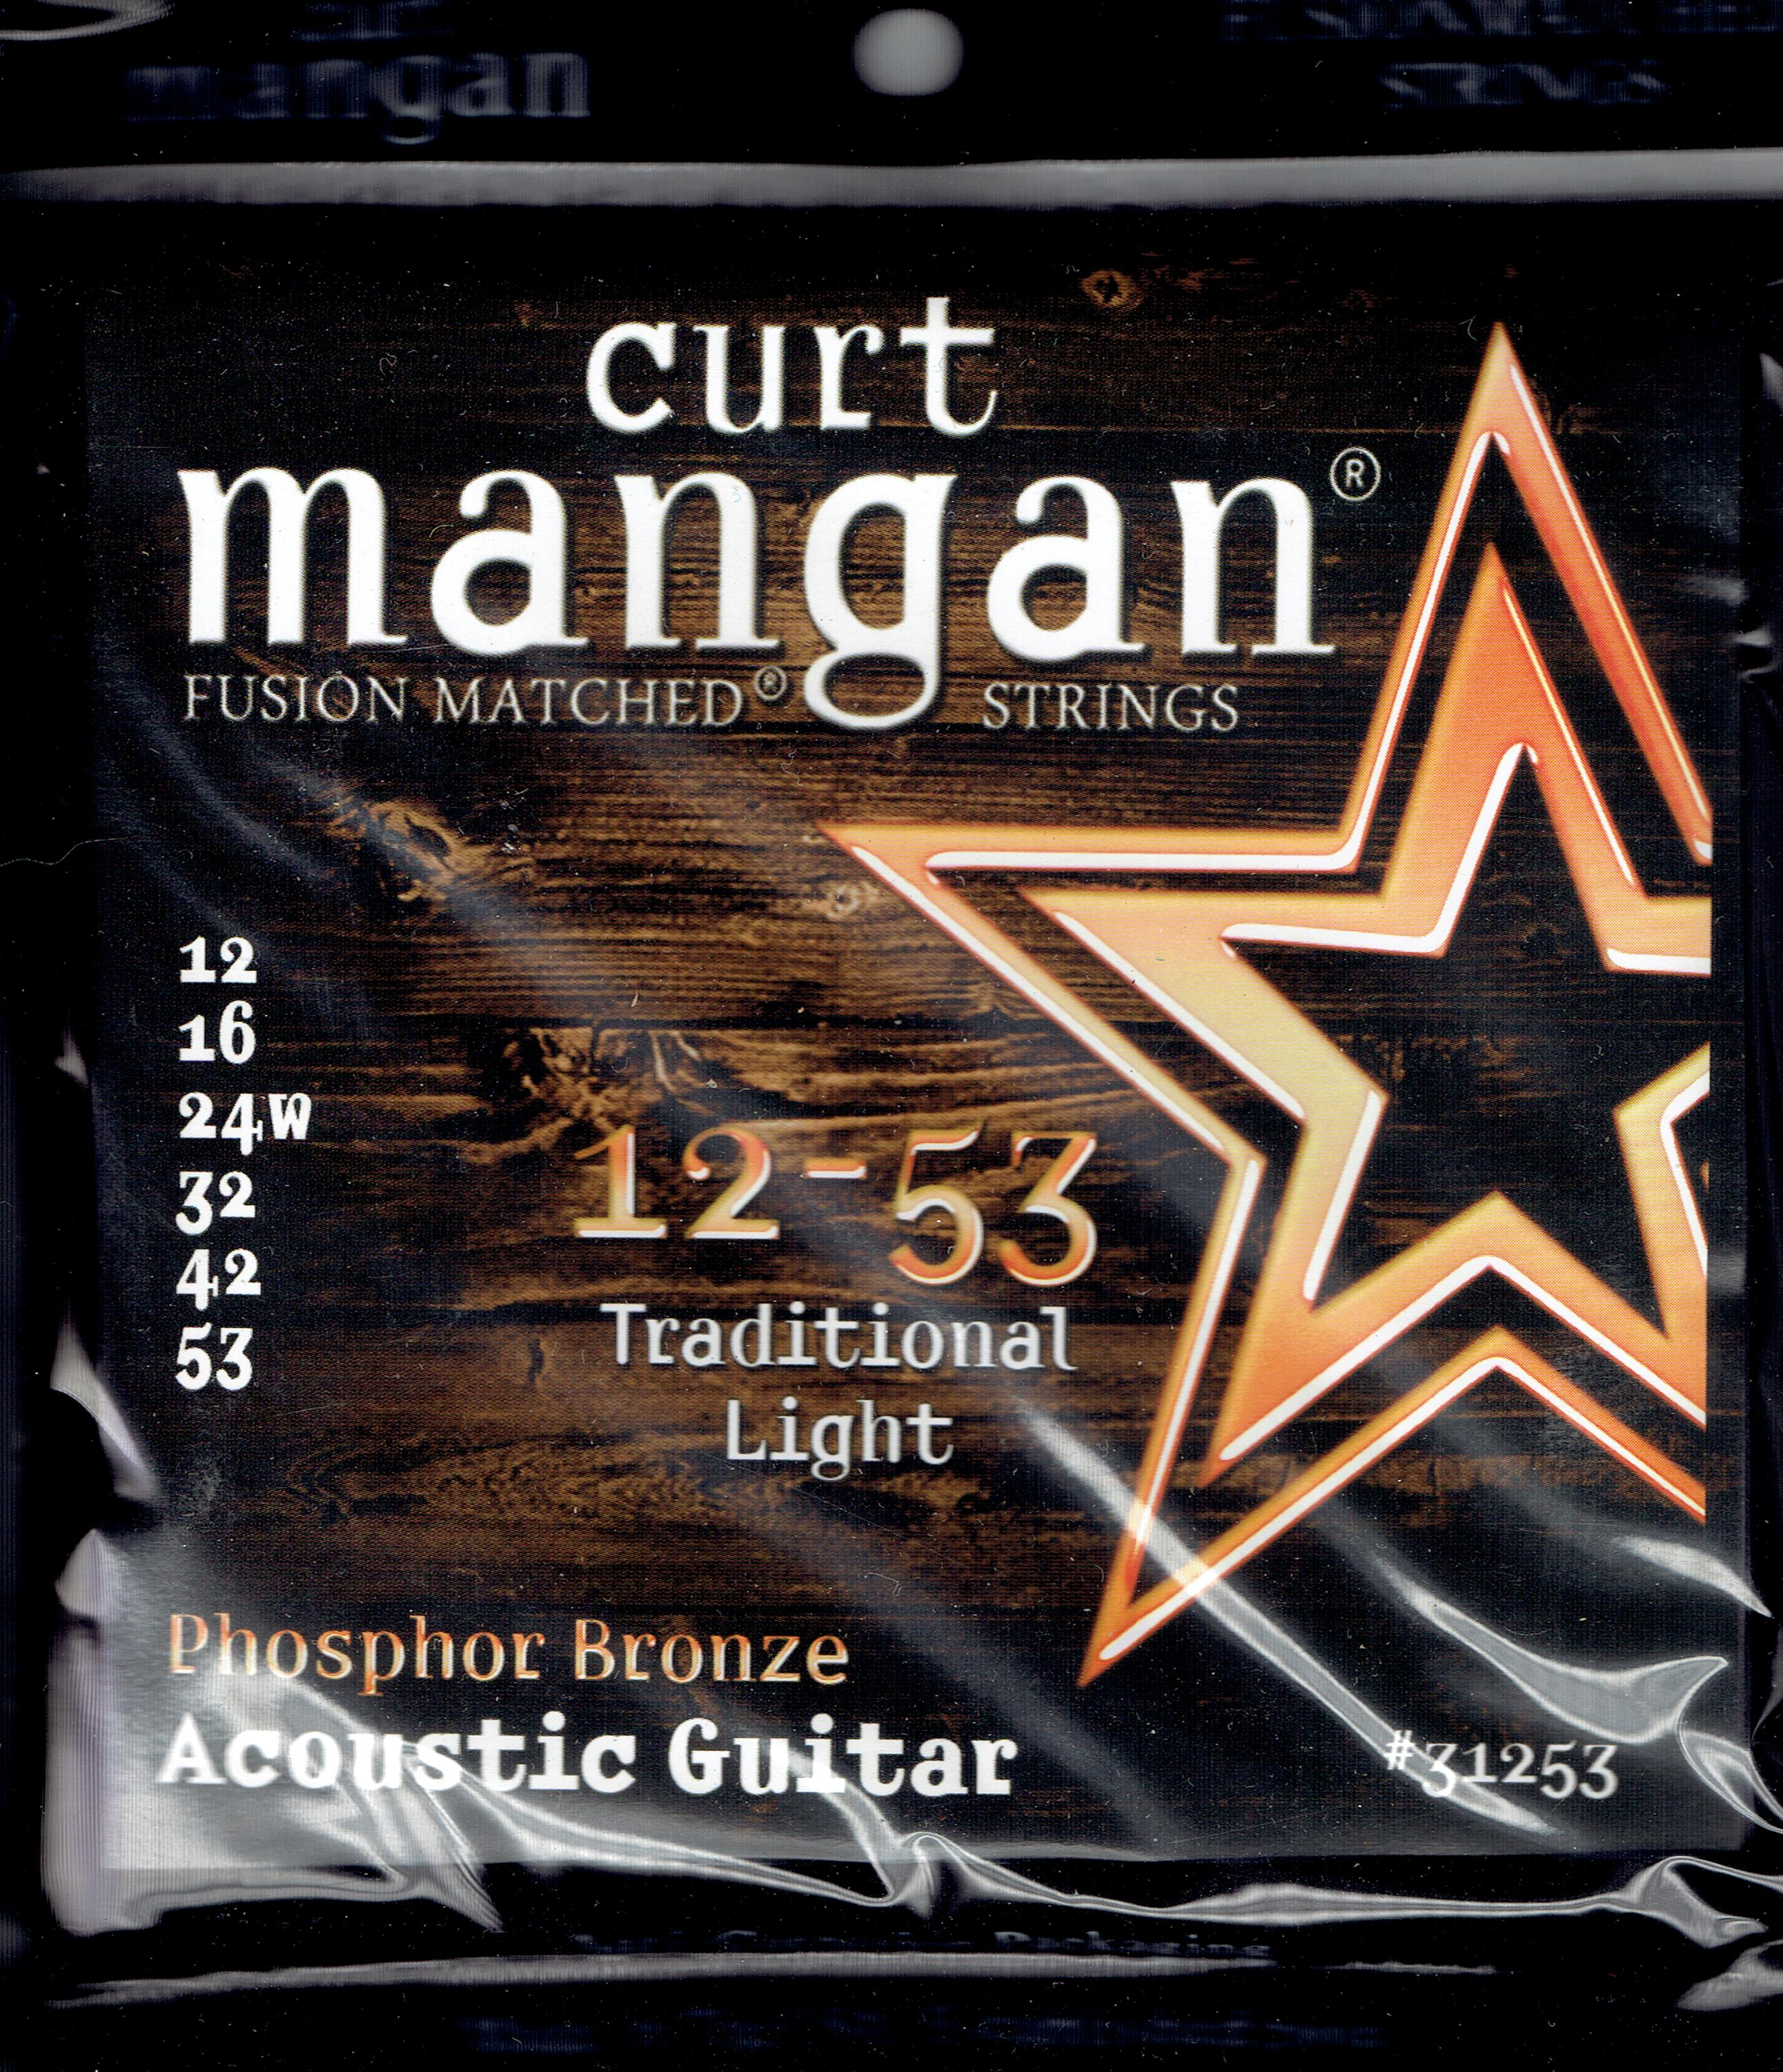 Curt Mangan acoustic phosphor bronze strings 12-53